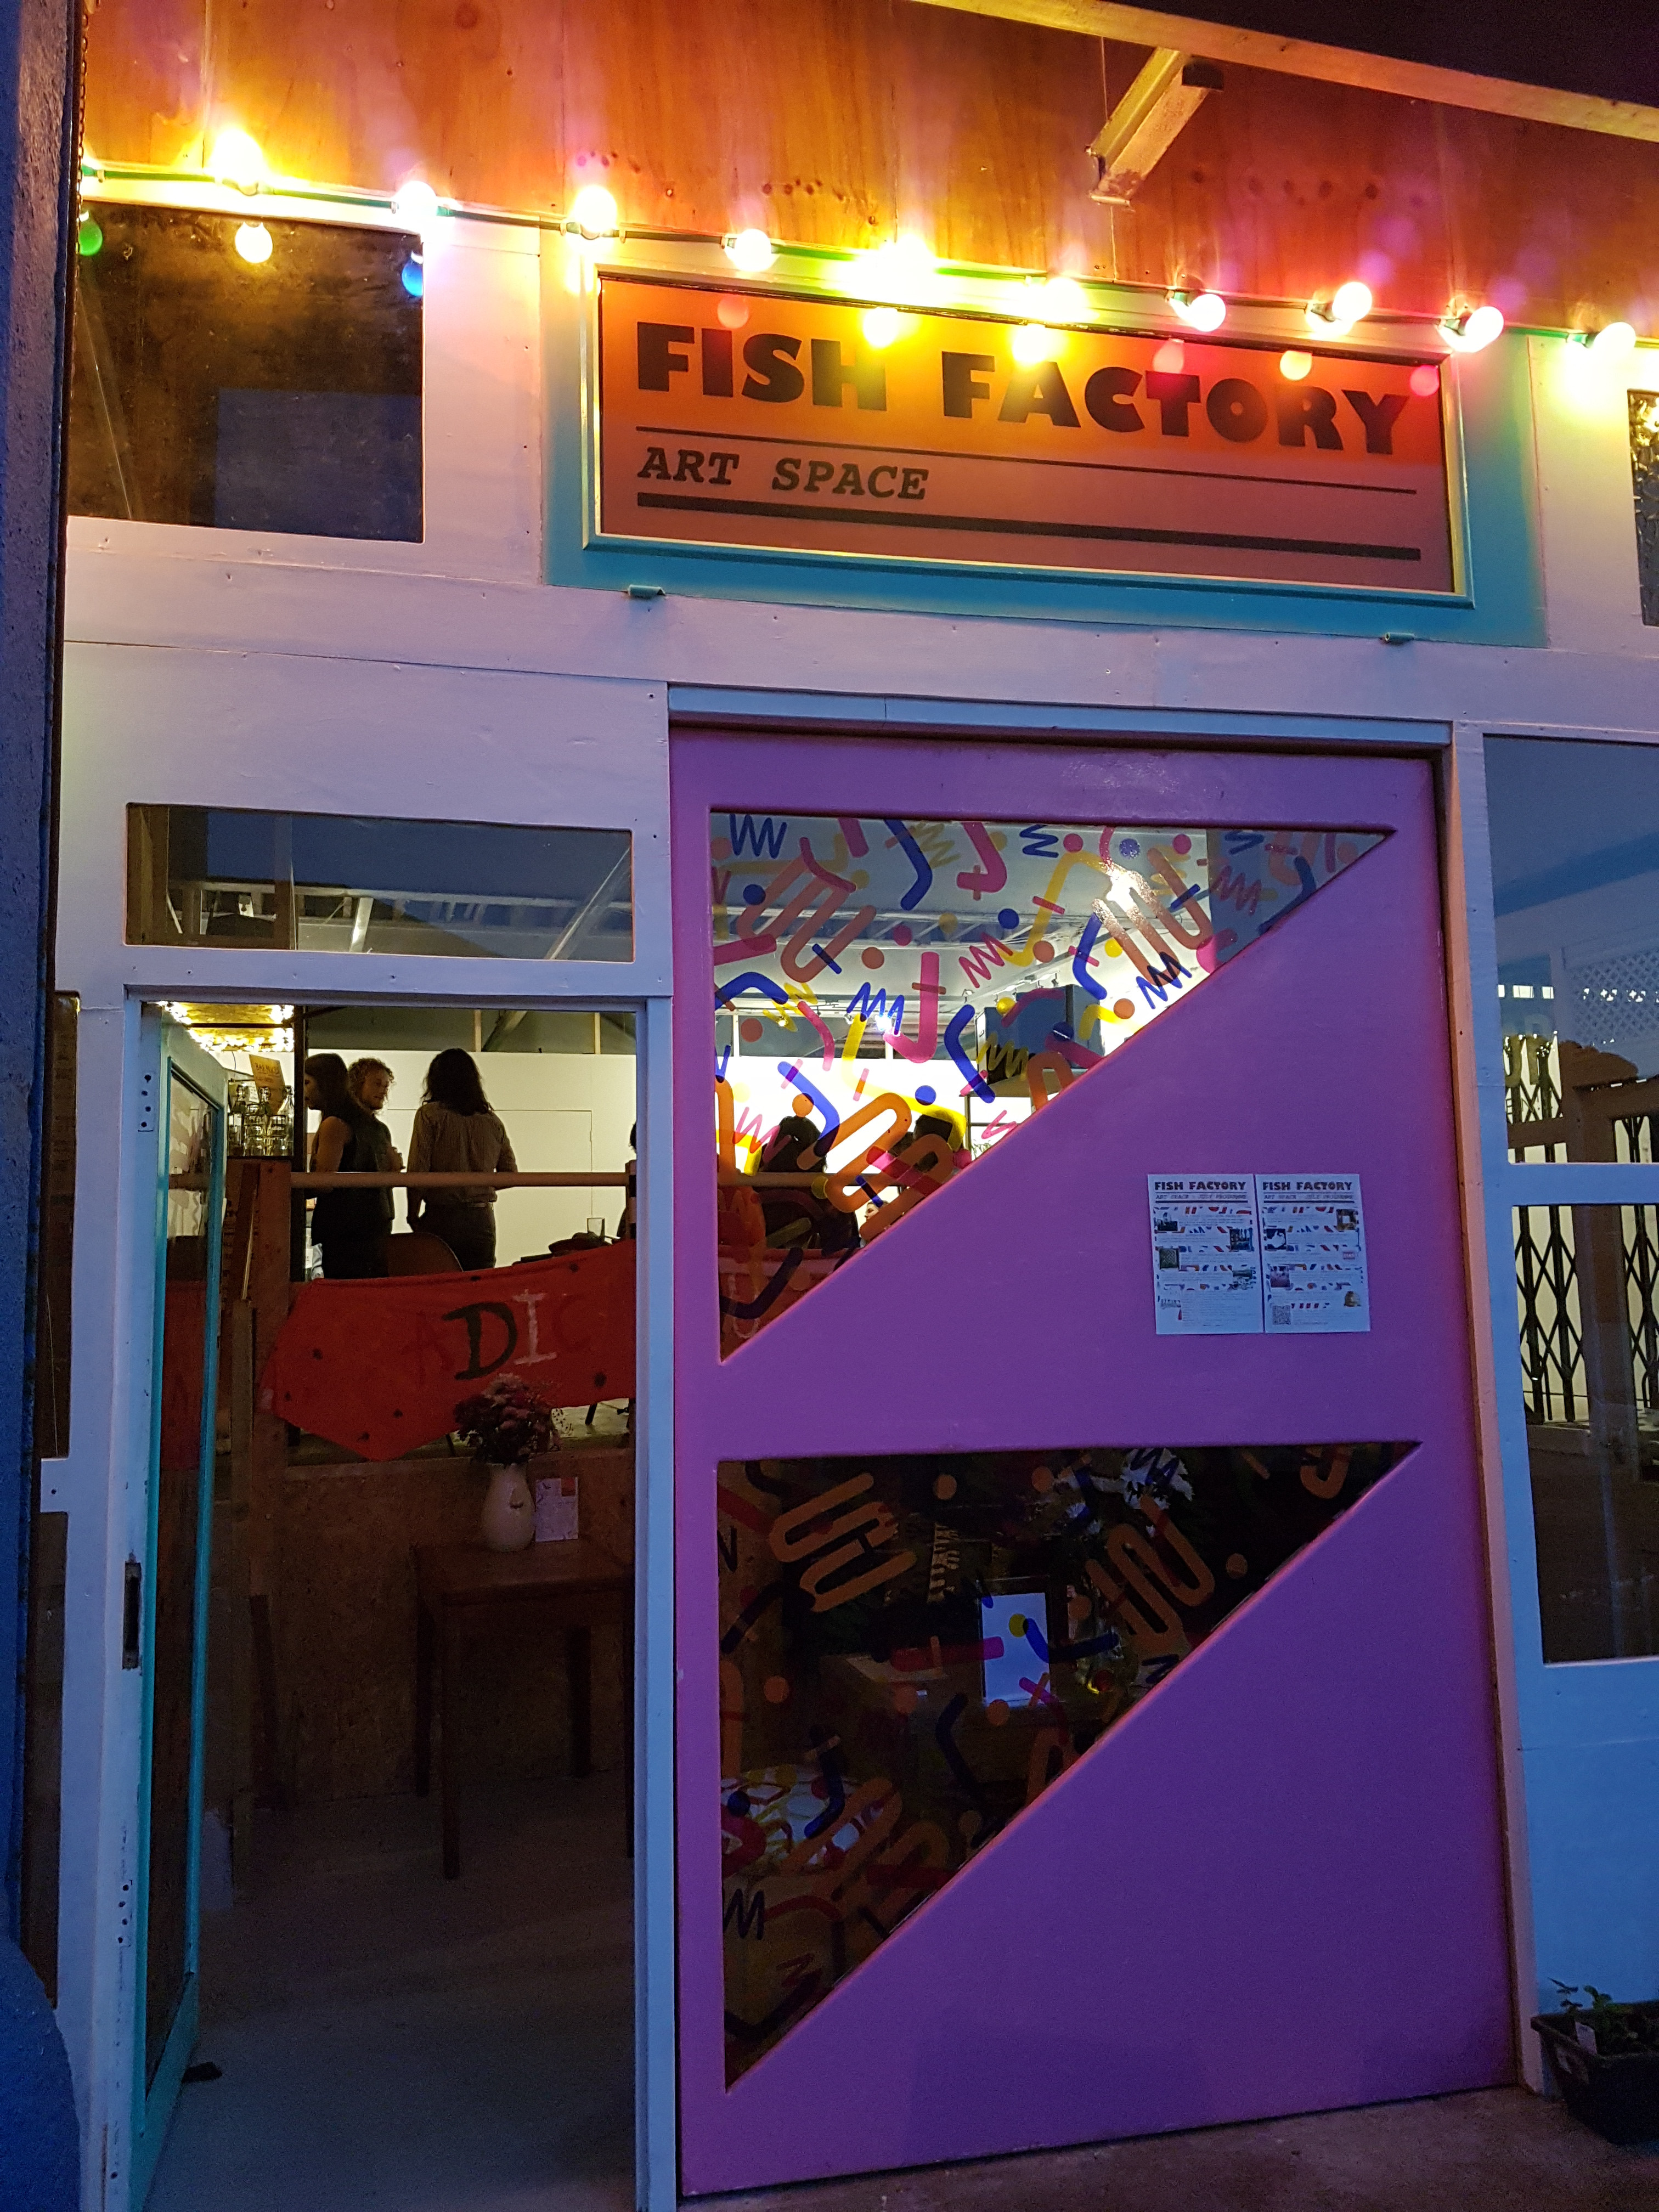 WHAT'S ON | Fish Factory Art Space: Studios, Gallery, Shop